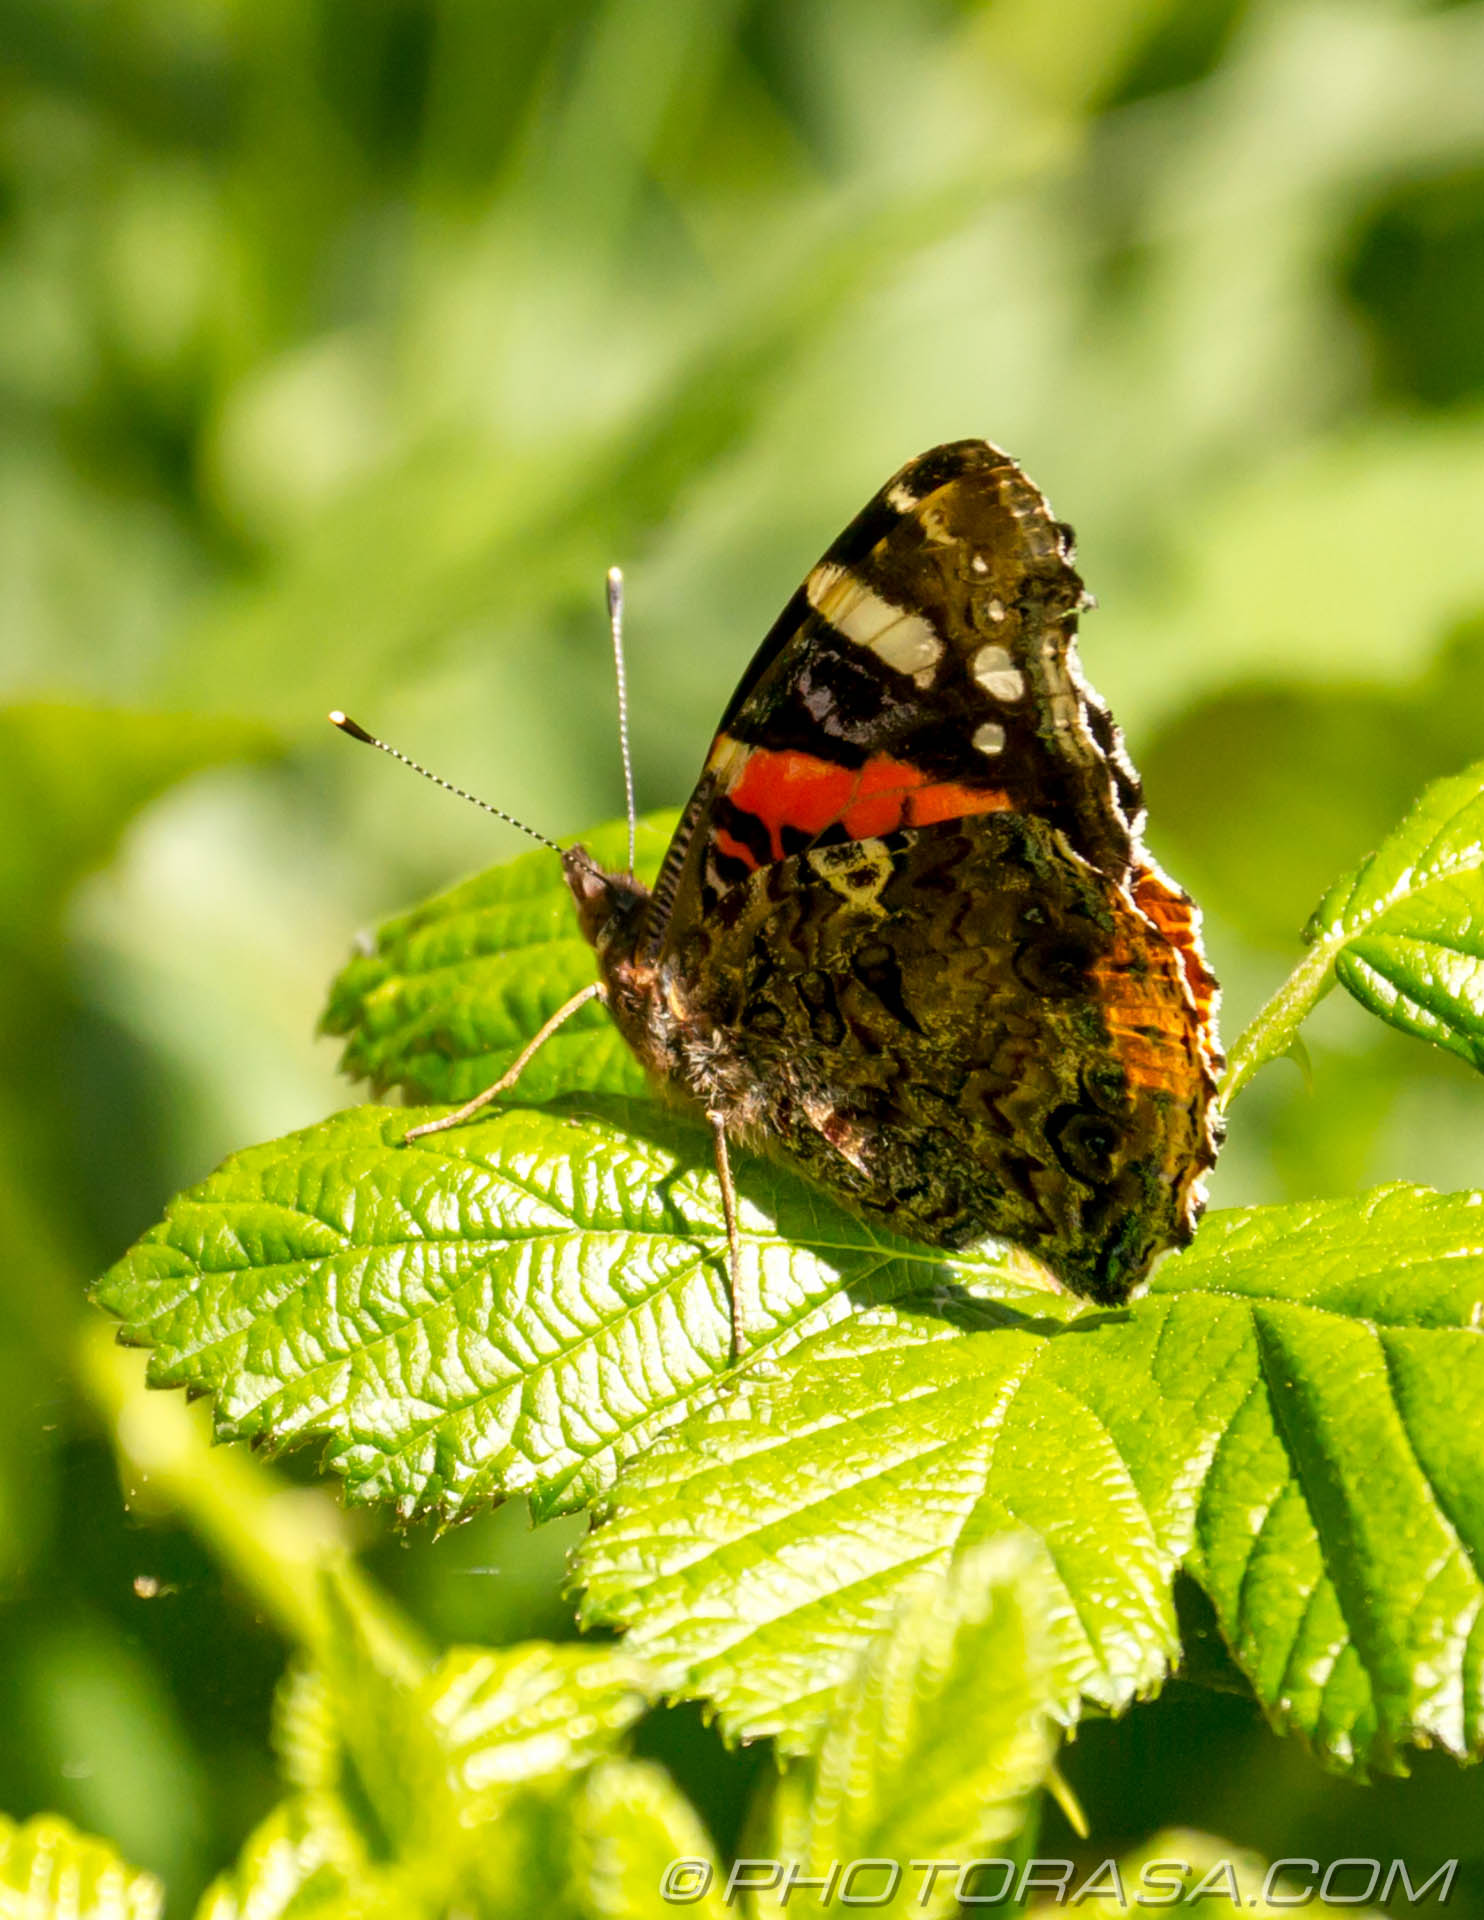 http://photorasa.com/red-admiral/red-admiral-perched-on-leaf/